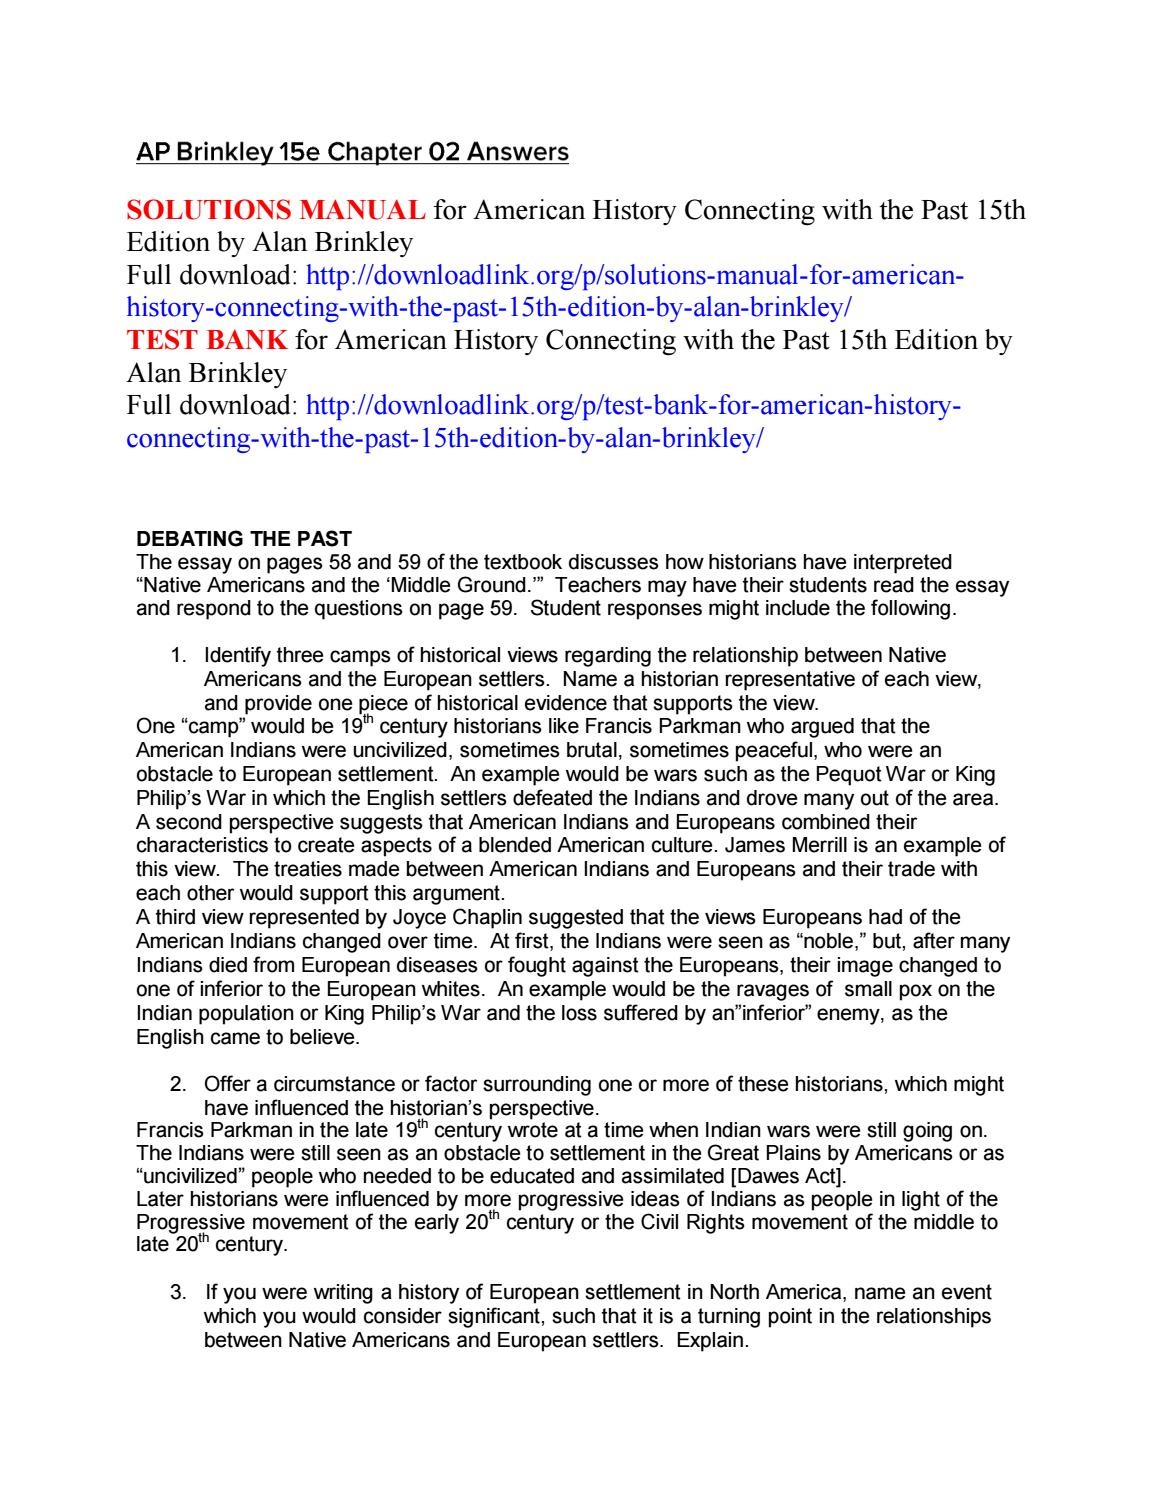 Narrative Essay Papers Solutions Manual For American History Connecting With The Past Th Edition  By Alan Brinkley By Lucief  Issuu Essay On Myself In English also English Essay Books Solutions Manual For American History Connecting With The Past Th  Where Is A Thesis Statement In An Essay